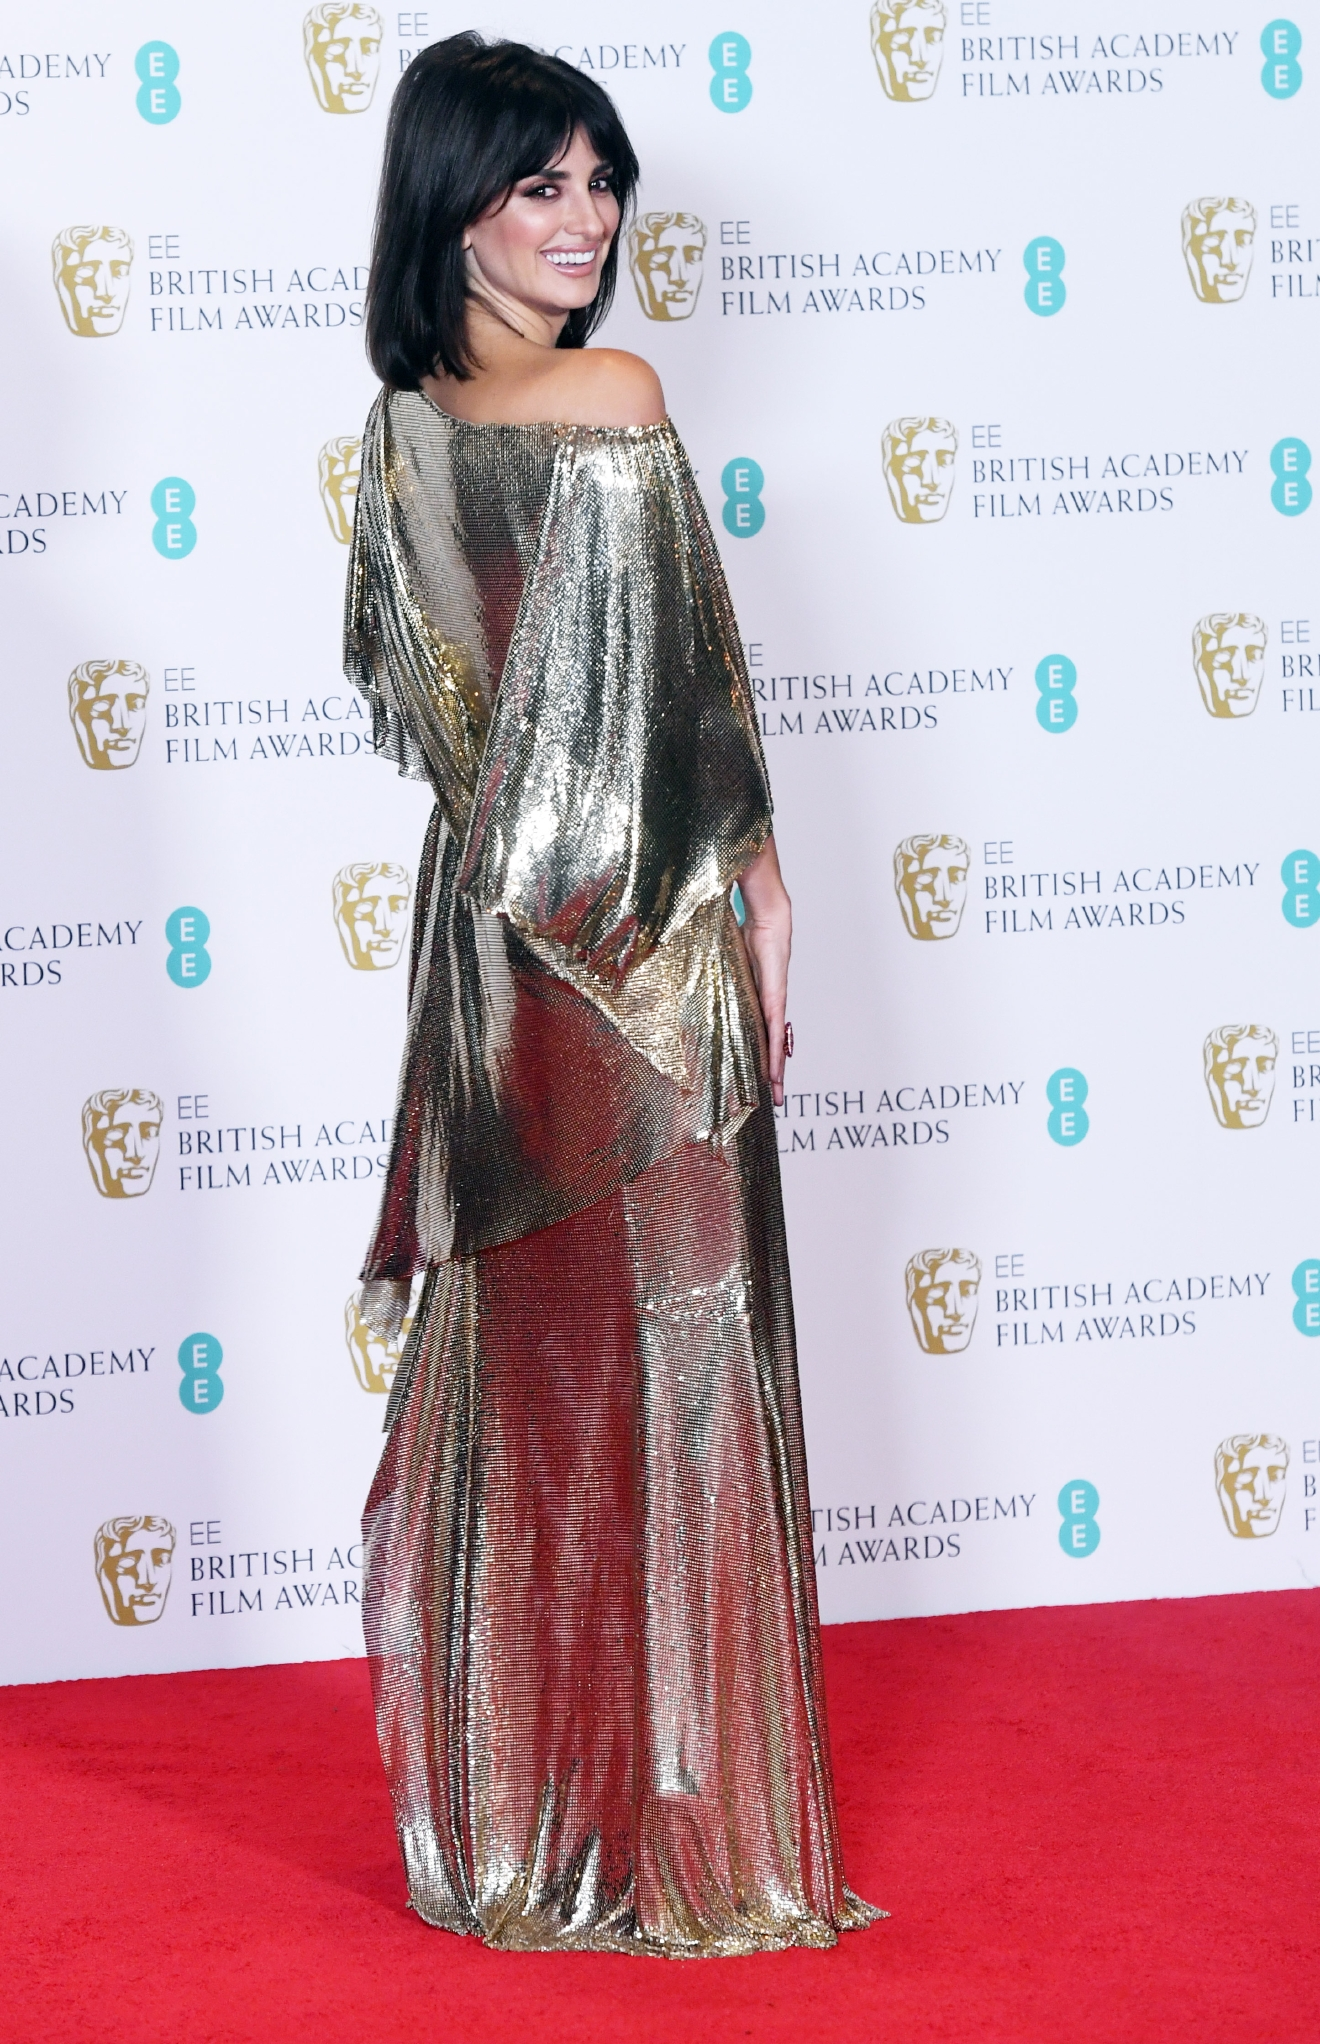 Penelope Cruz attends the 2017 EE British Academy Film Awards (BAFTAs) in London, Feb. 12, 2017. (WENN)